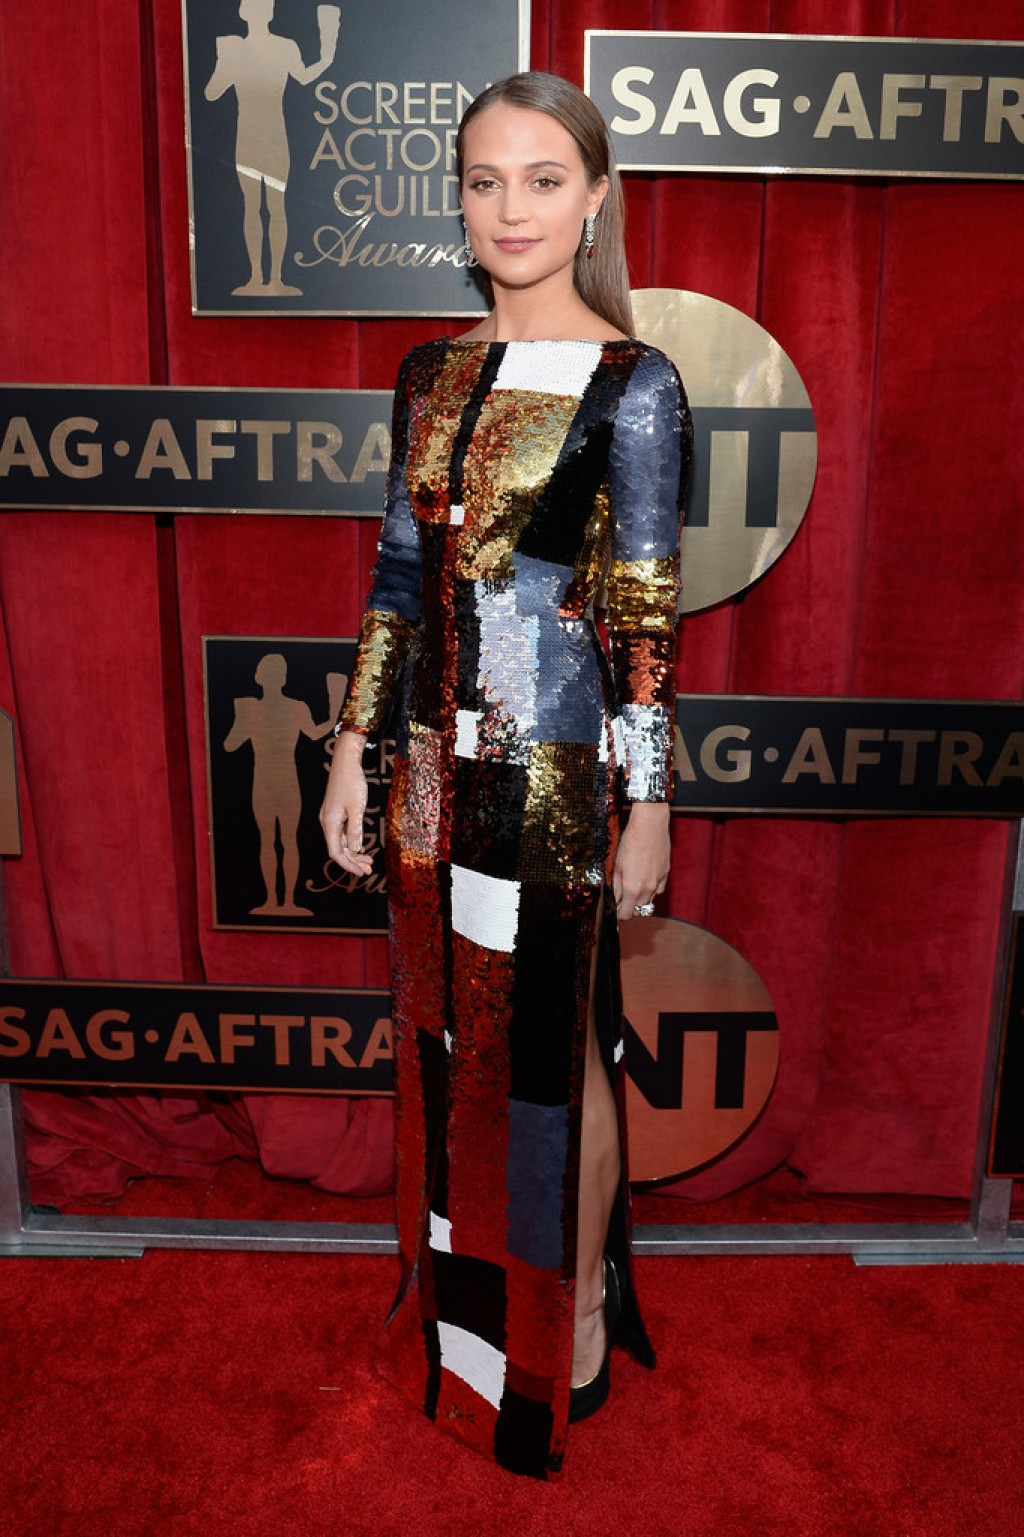 Screen-Actors-Guild-Awards-Alicia-VIkander-2016-Dress-1024x1537